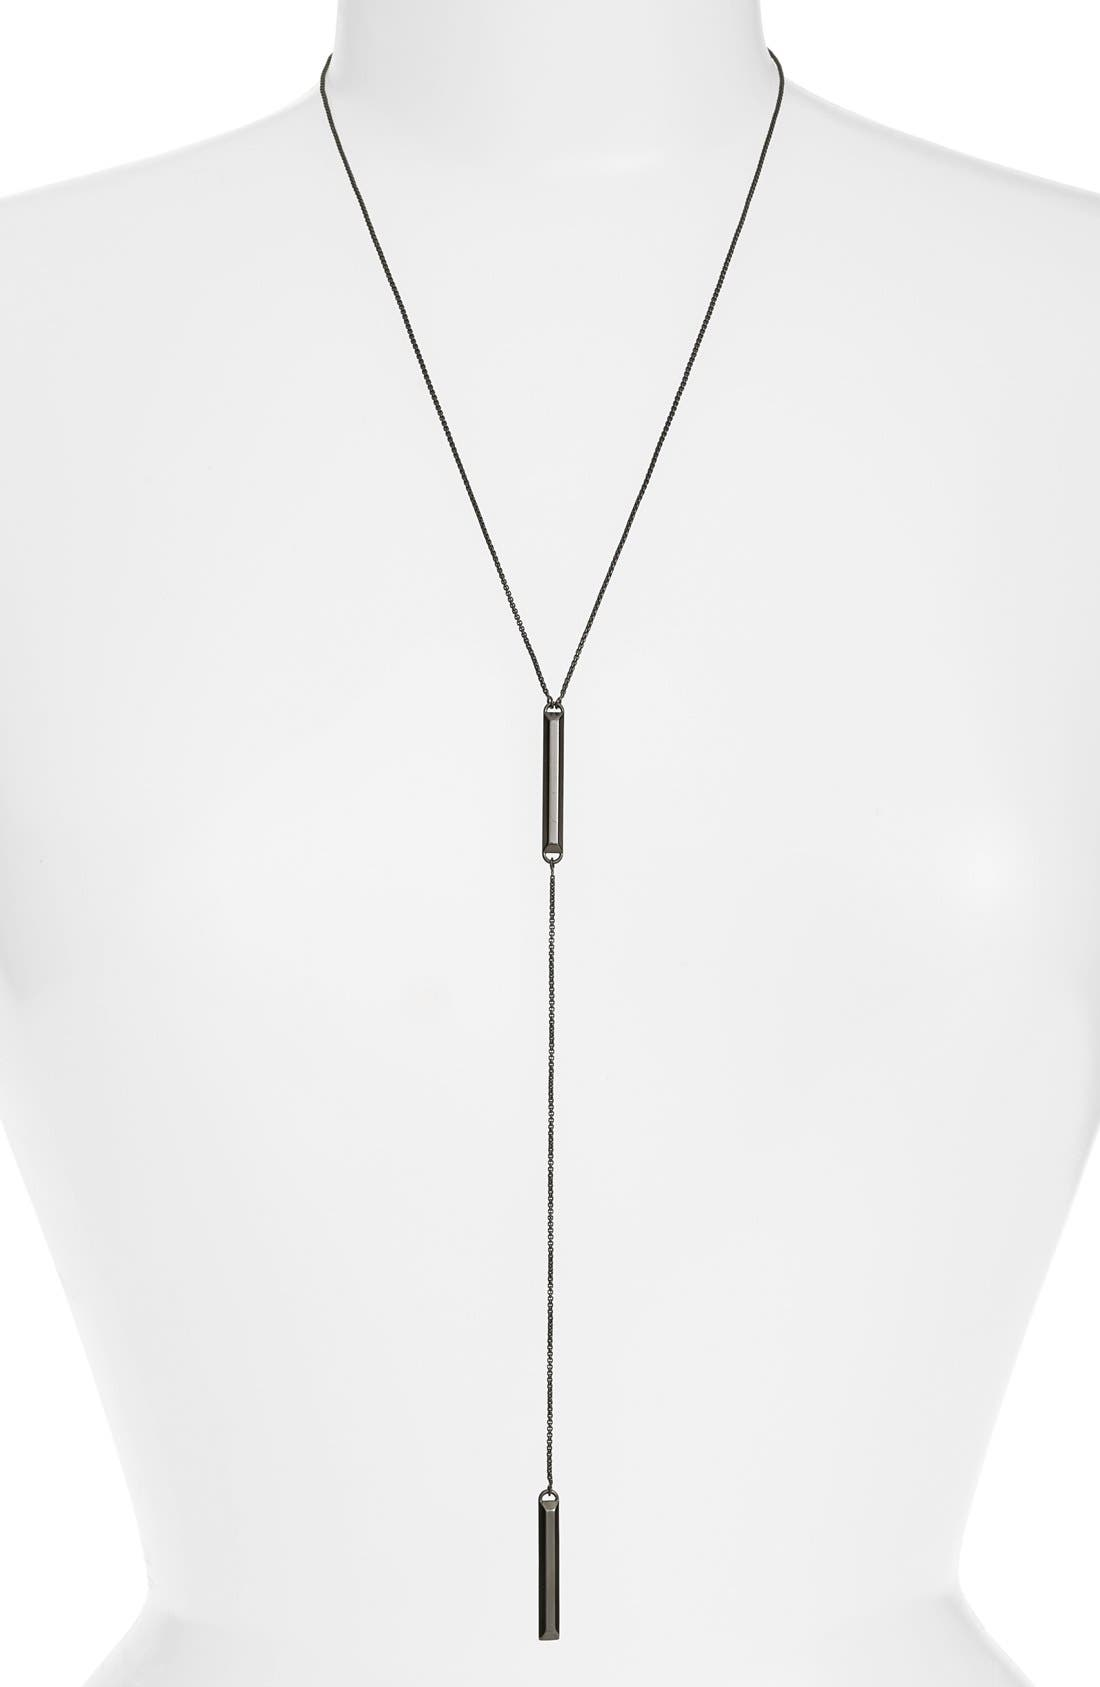 Alternate Image 1 Selected - Kendra Scott 'Shelton' Y-Necklace